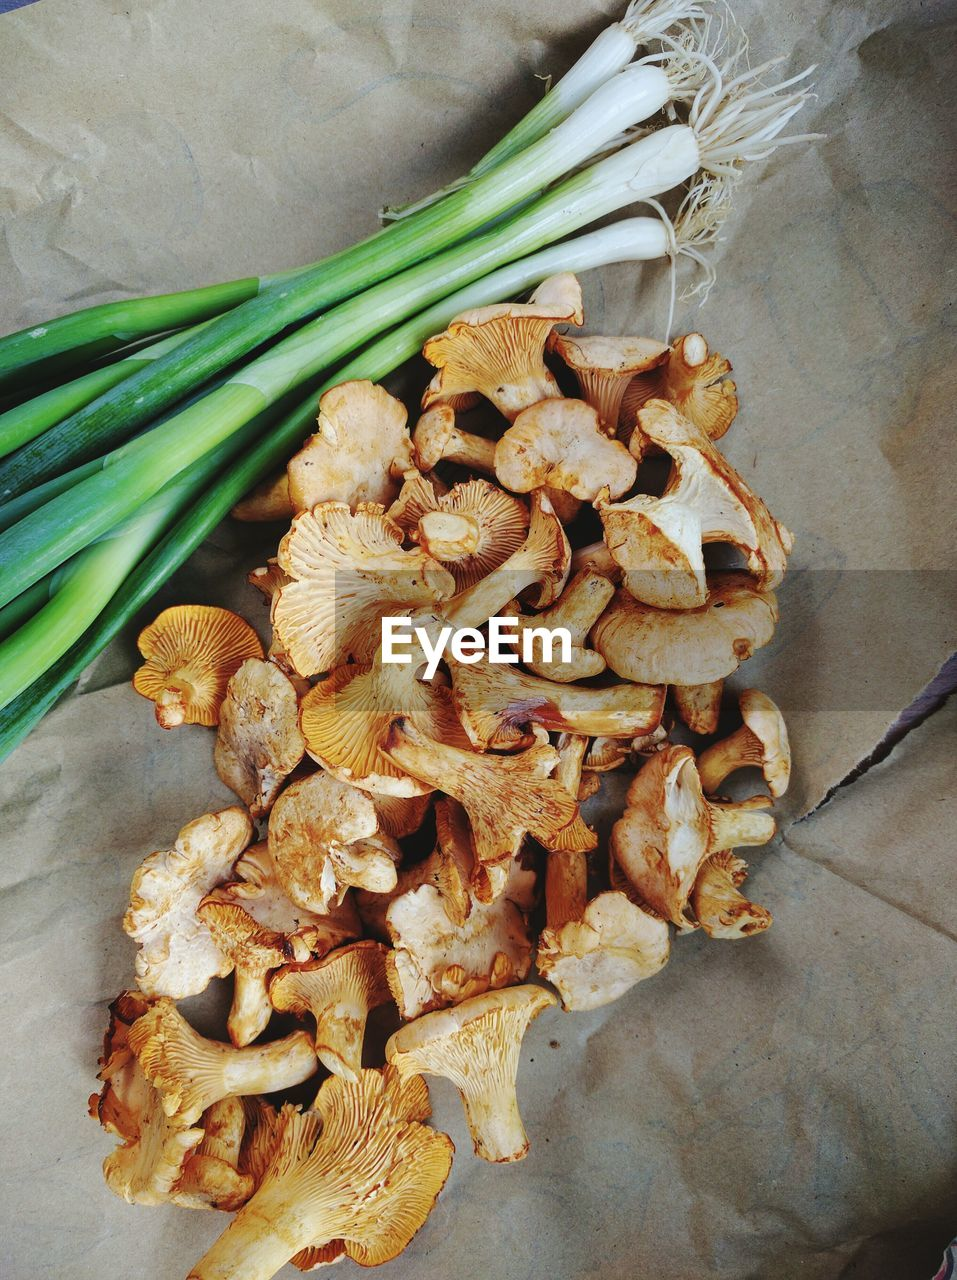 High Angle View Of Mushrooms With Scallions On Paper